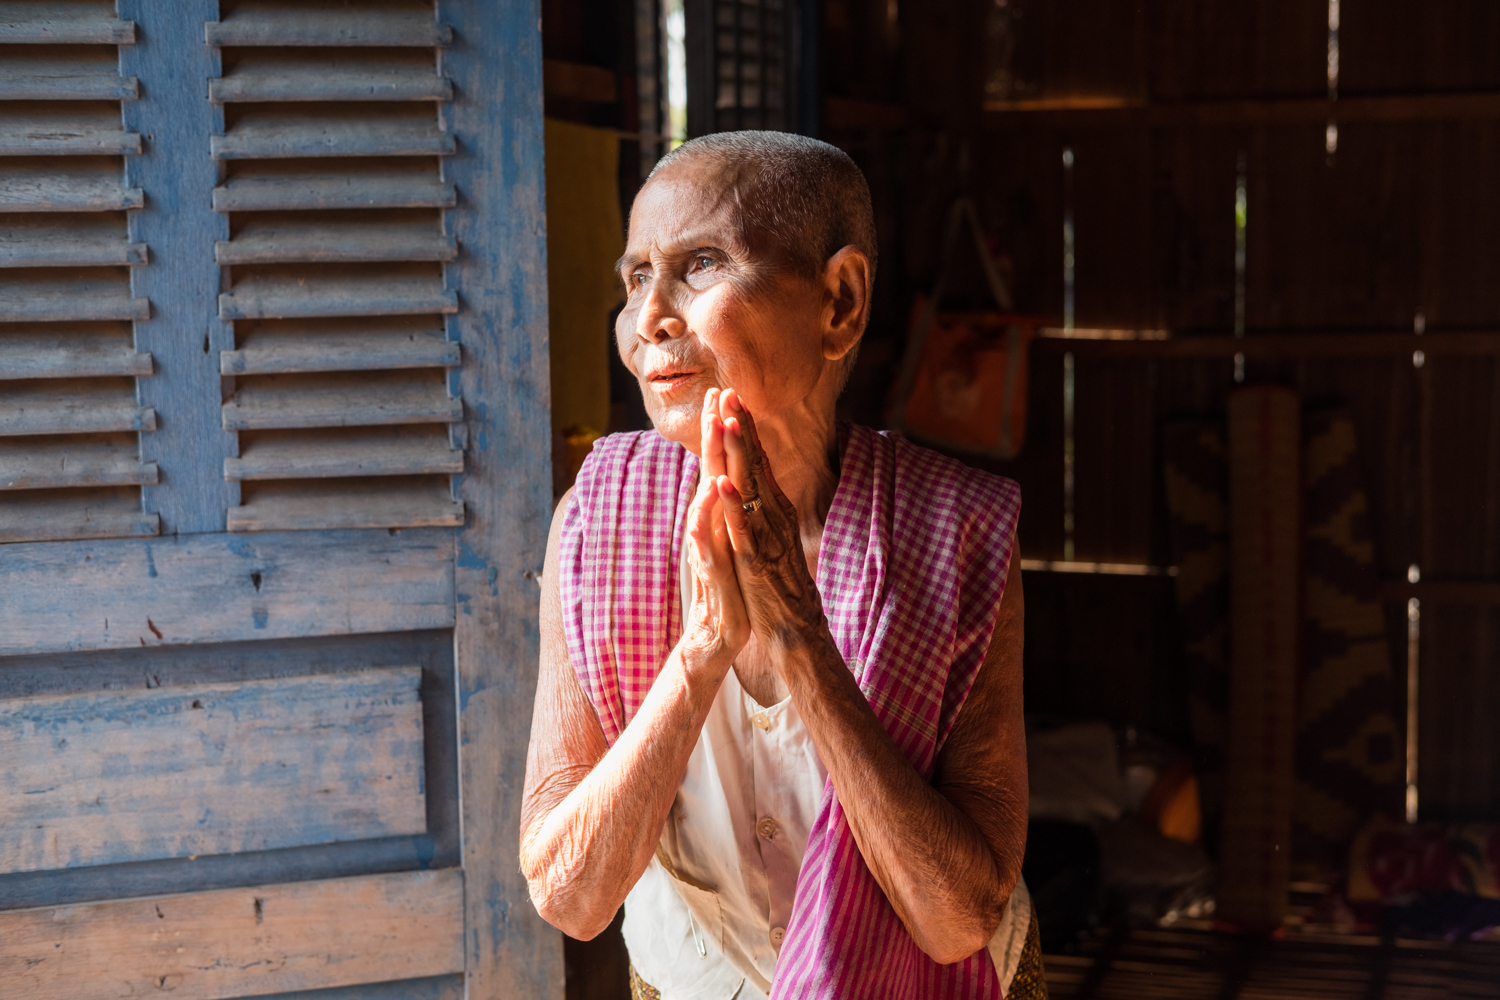 A local Cambodian woman in the village of Angkor Ban pauses for a moment of reflection in her home's doorway.